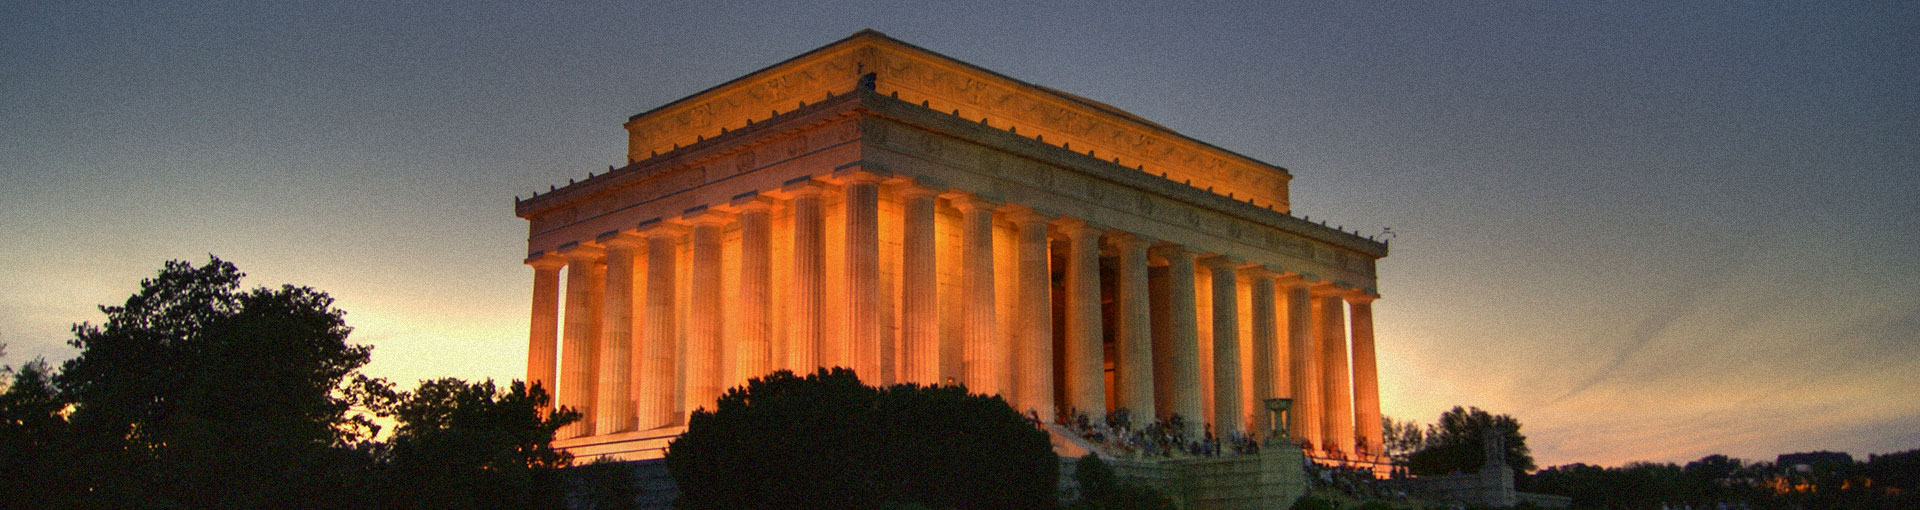 The Lincoln Memorial monument in Washington, DC at sunset